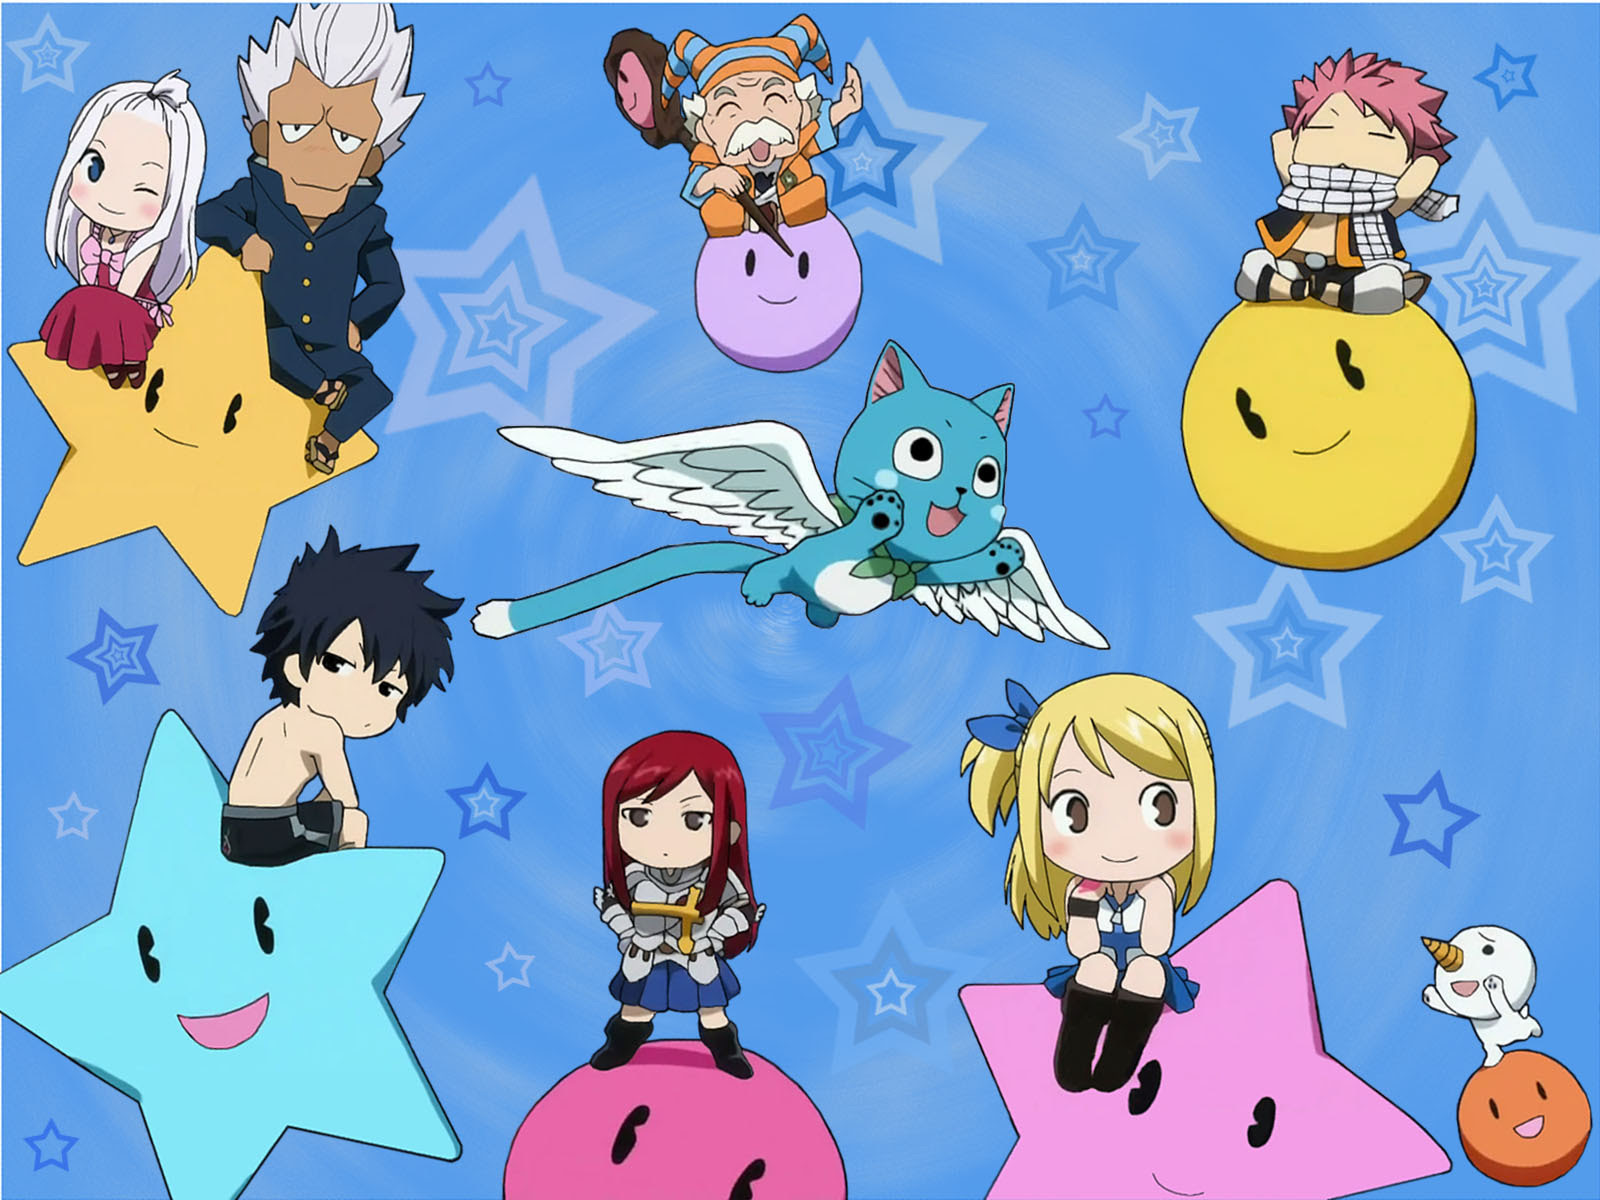 Fairy Tail Fairy Tail フェアリーテイル 壁紙 22442943